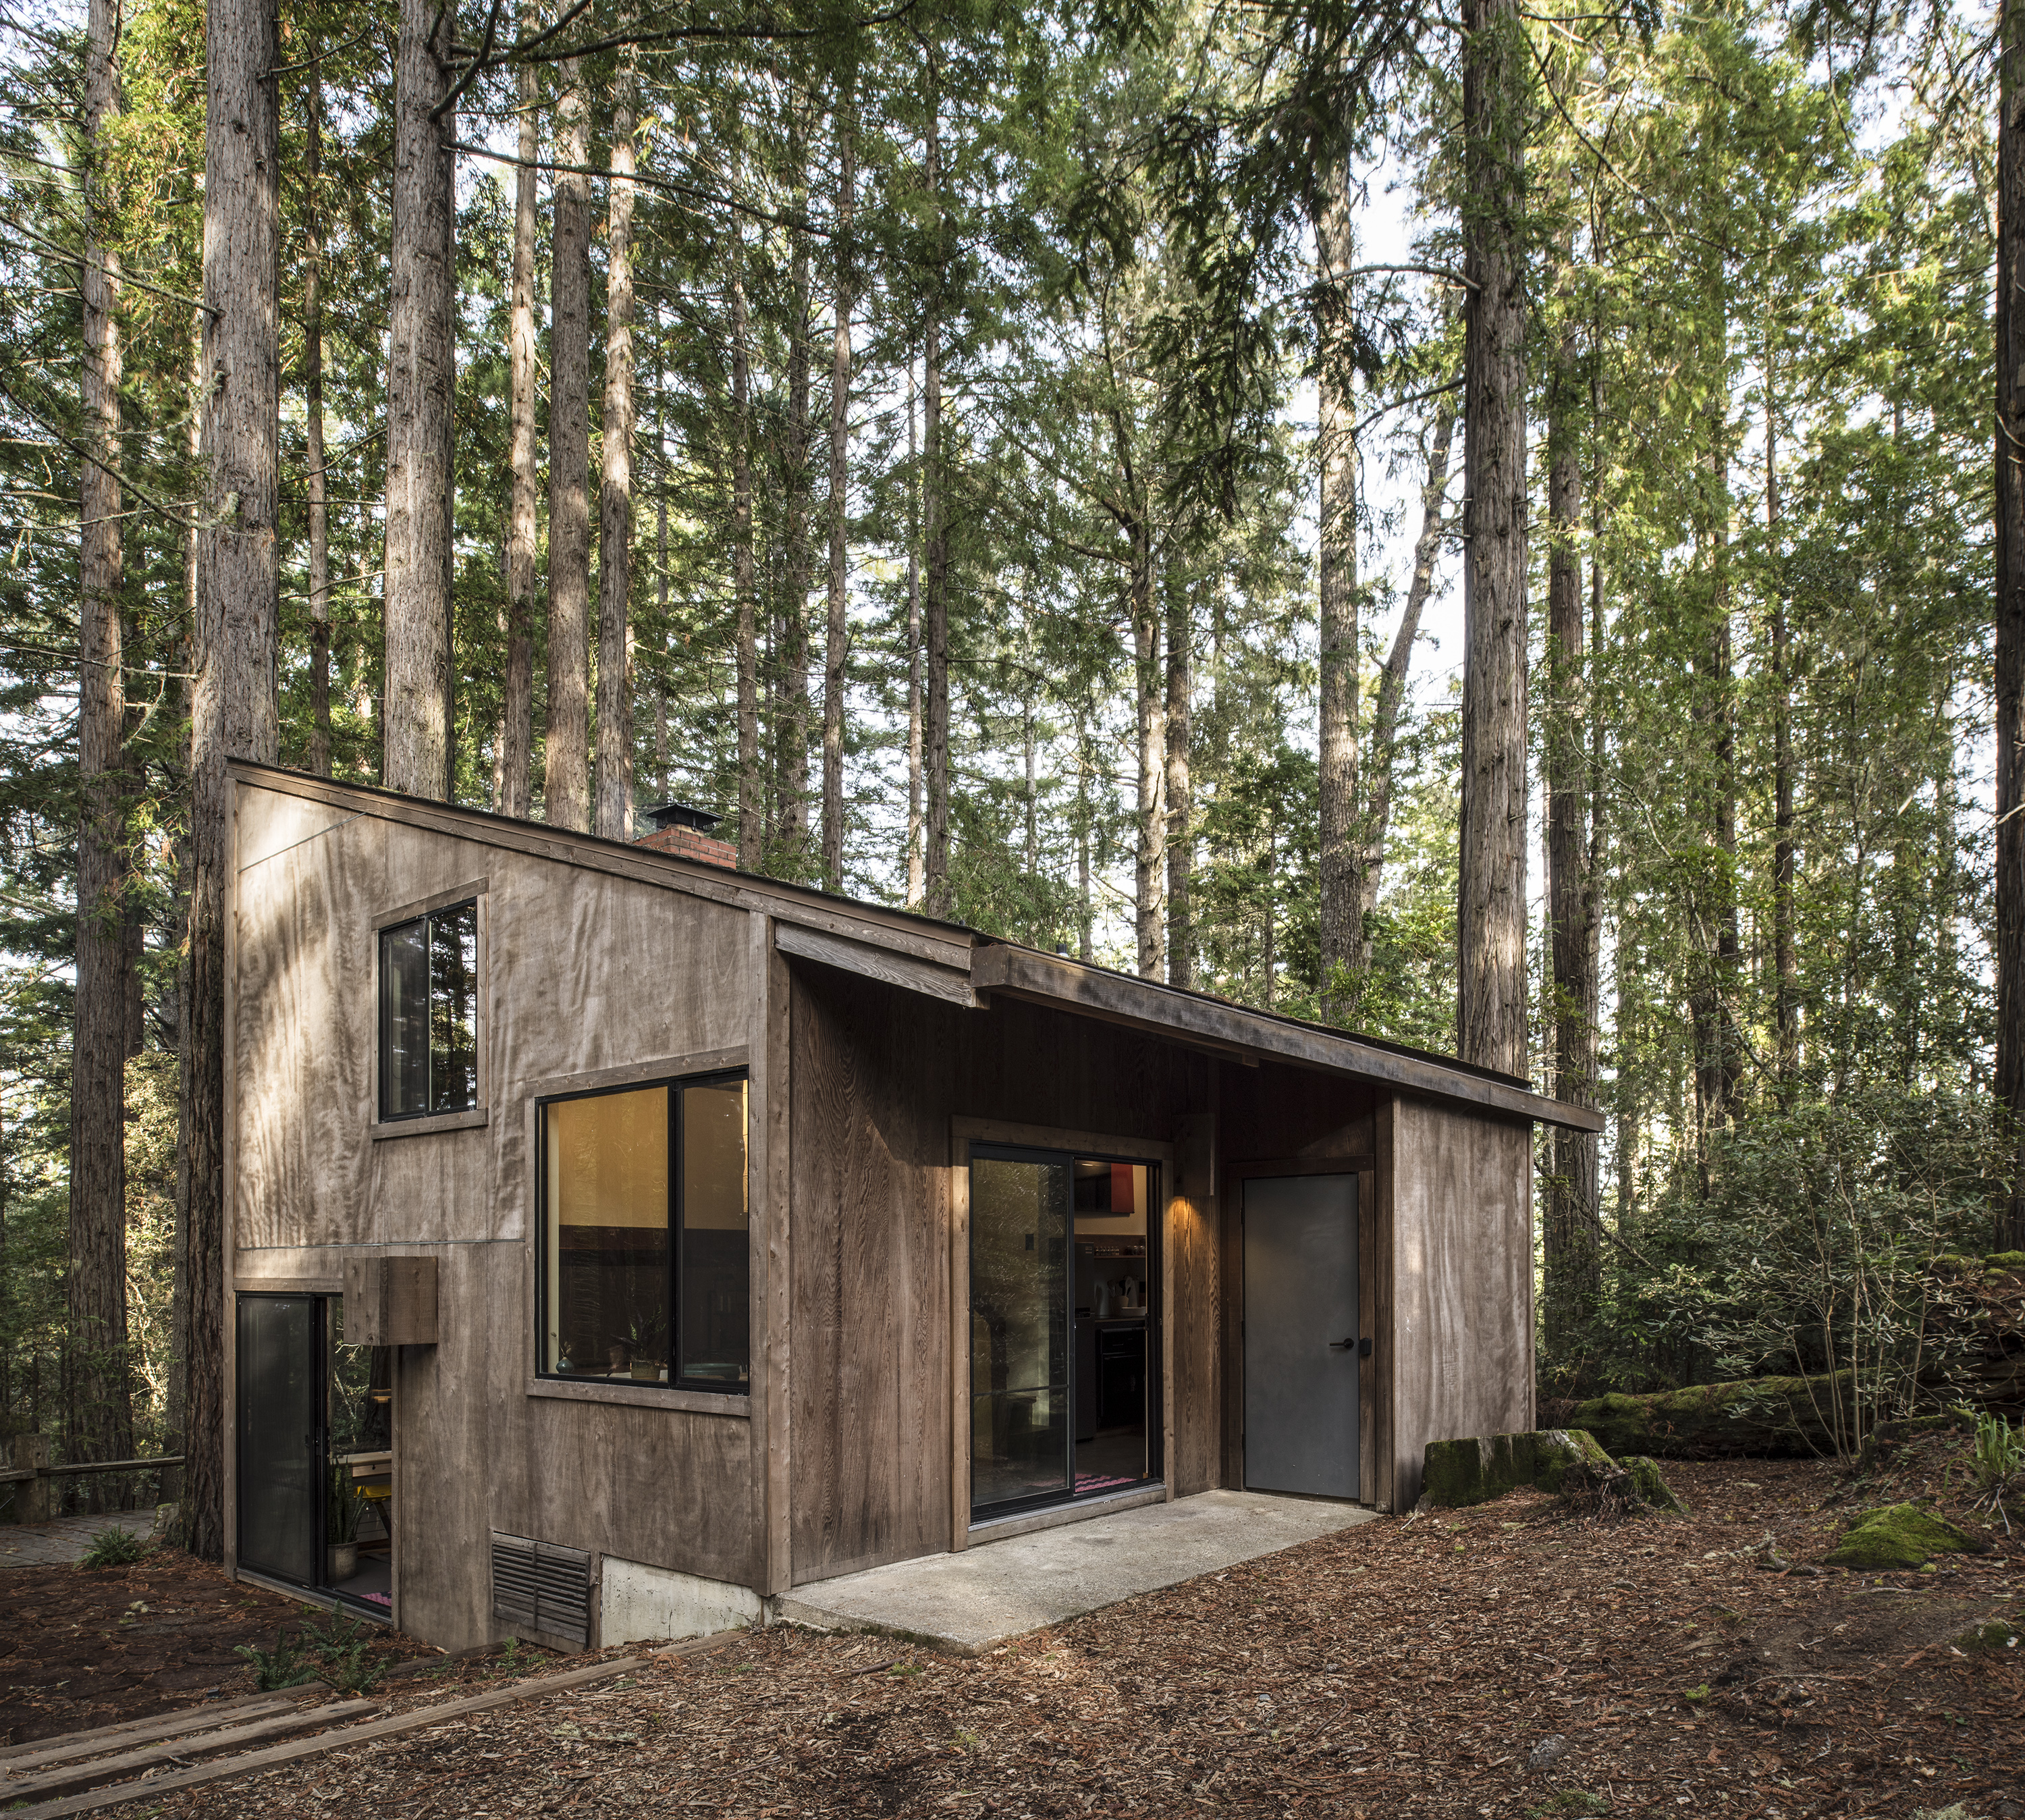 The exterior of a house. The house structure is comprised of wood. The house sits in a forest full of trees.